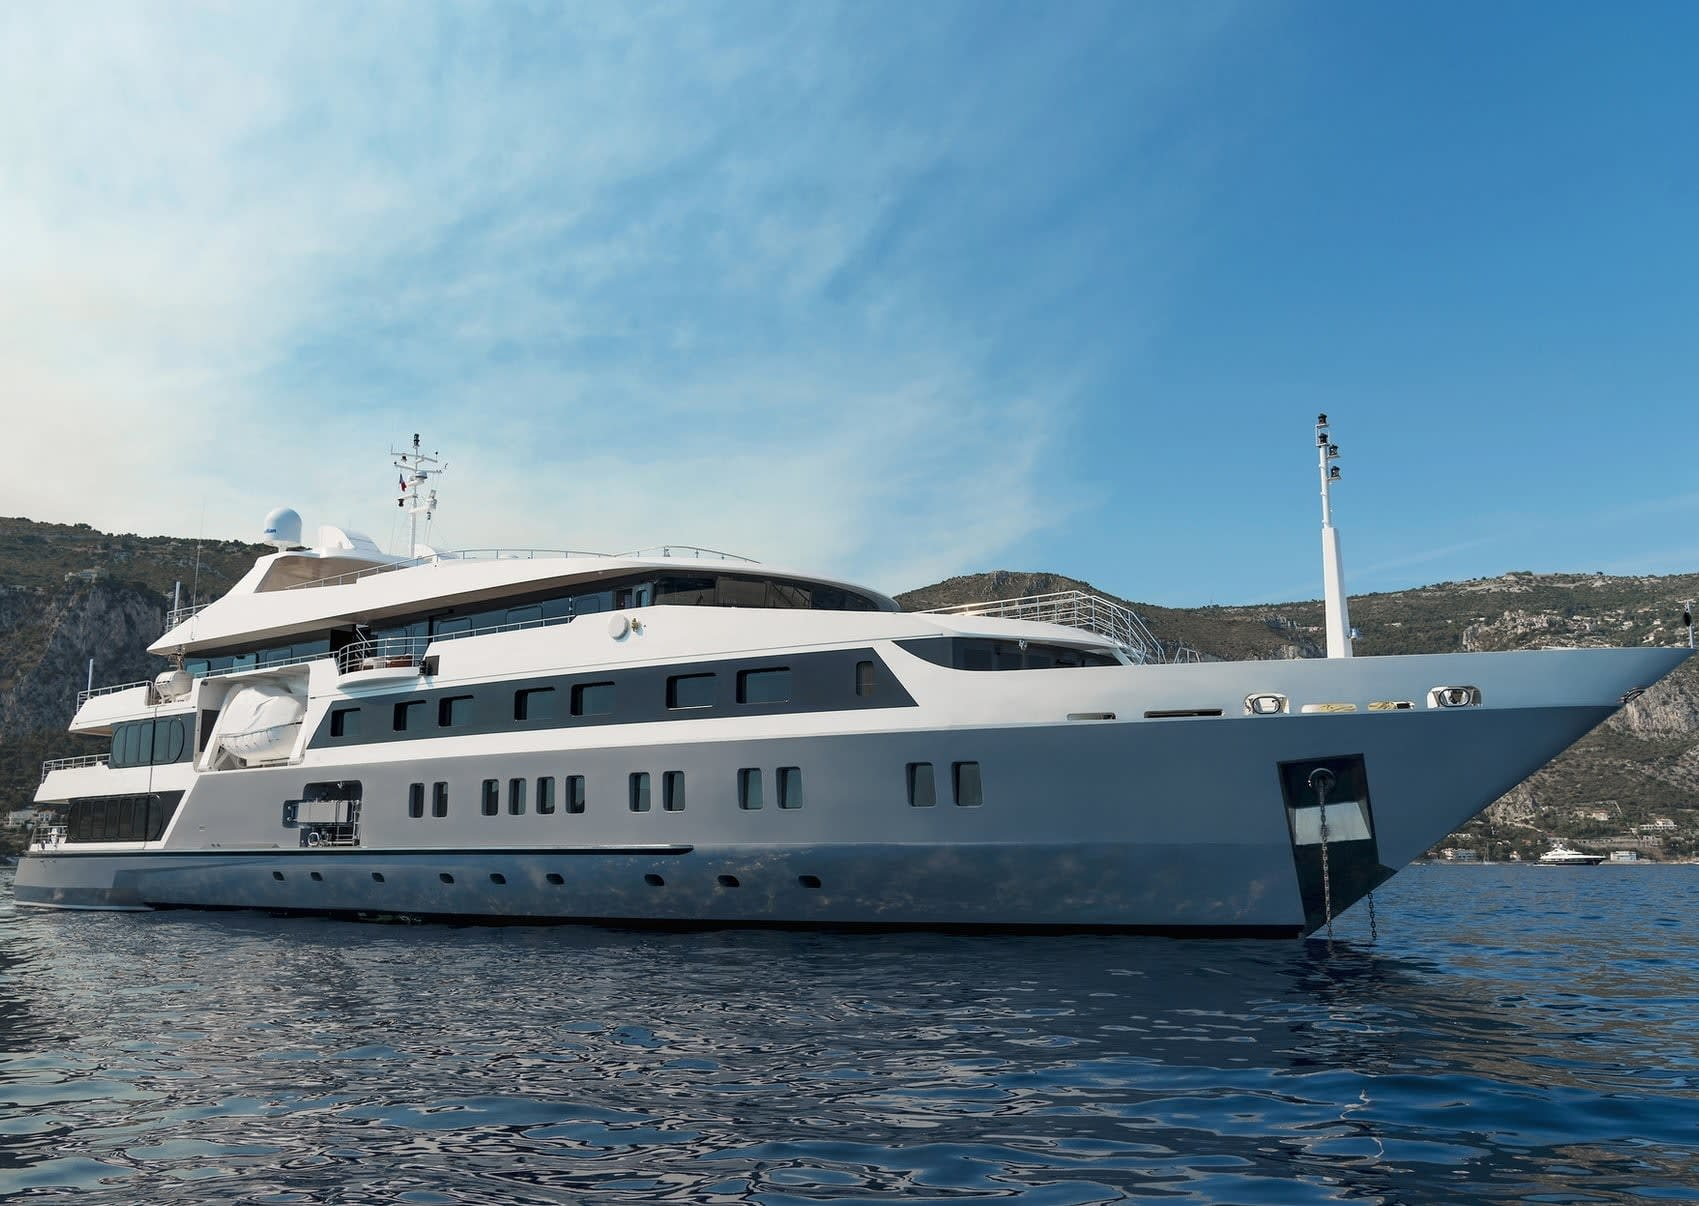 Image of Serenity 40.5M (133.0FT) motor yacht